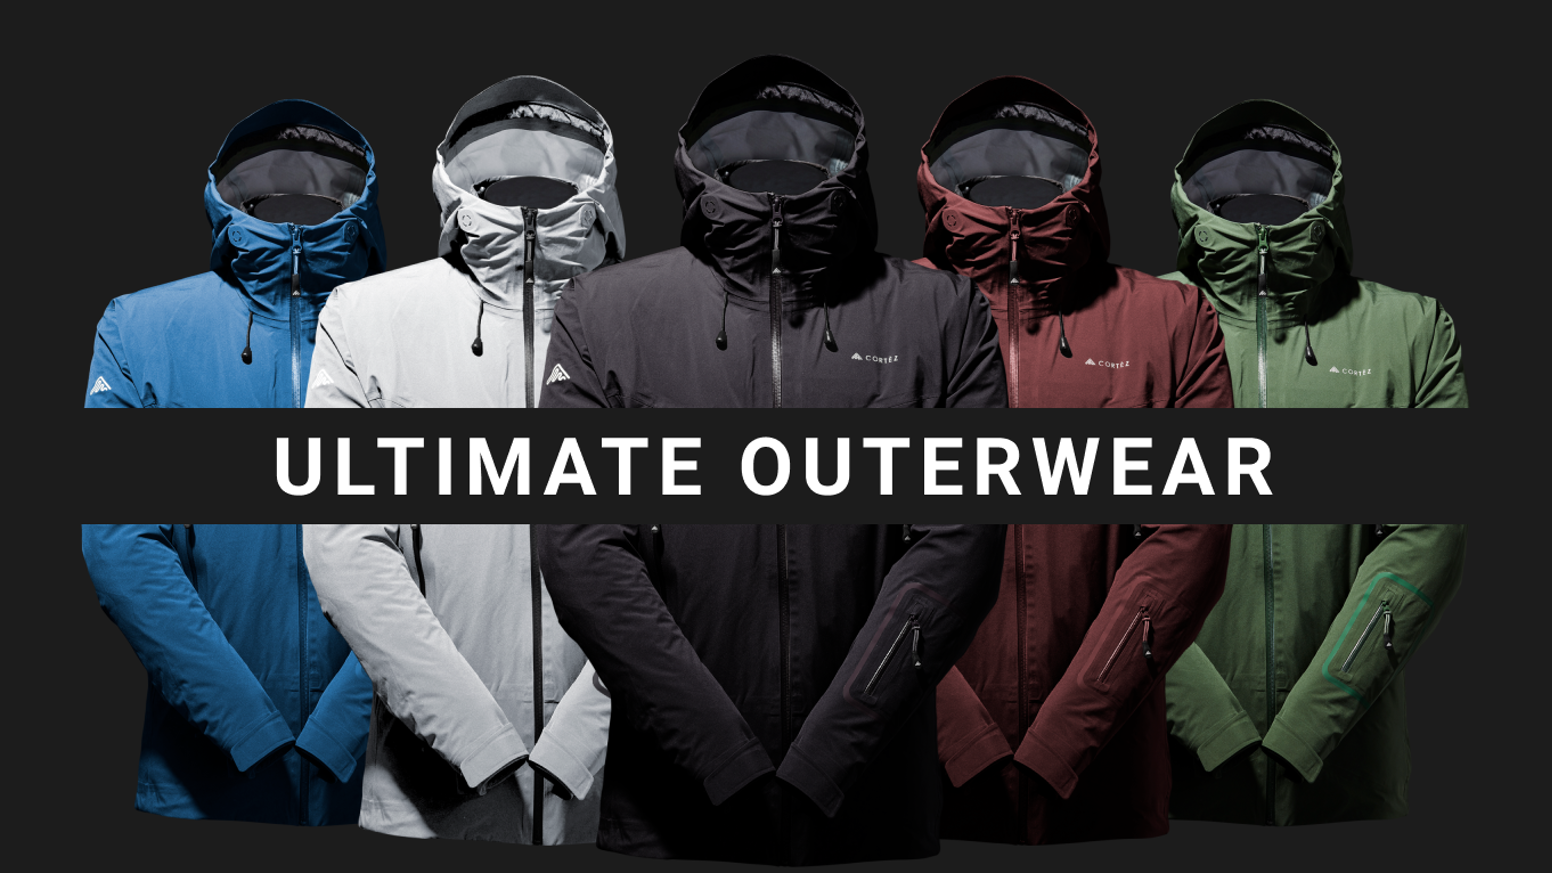 High-performance outerwear for all seasons. 3 lightweight jackets, made of high-quality materials, simplistic design at excellent value